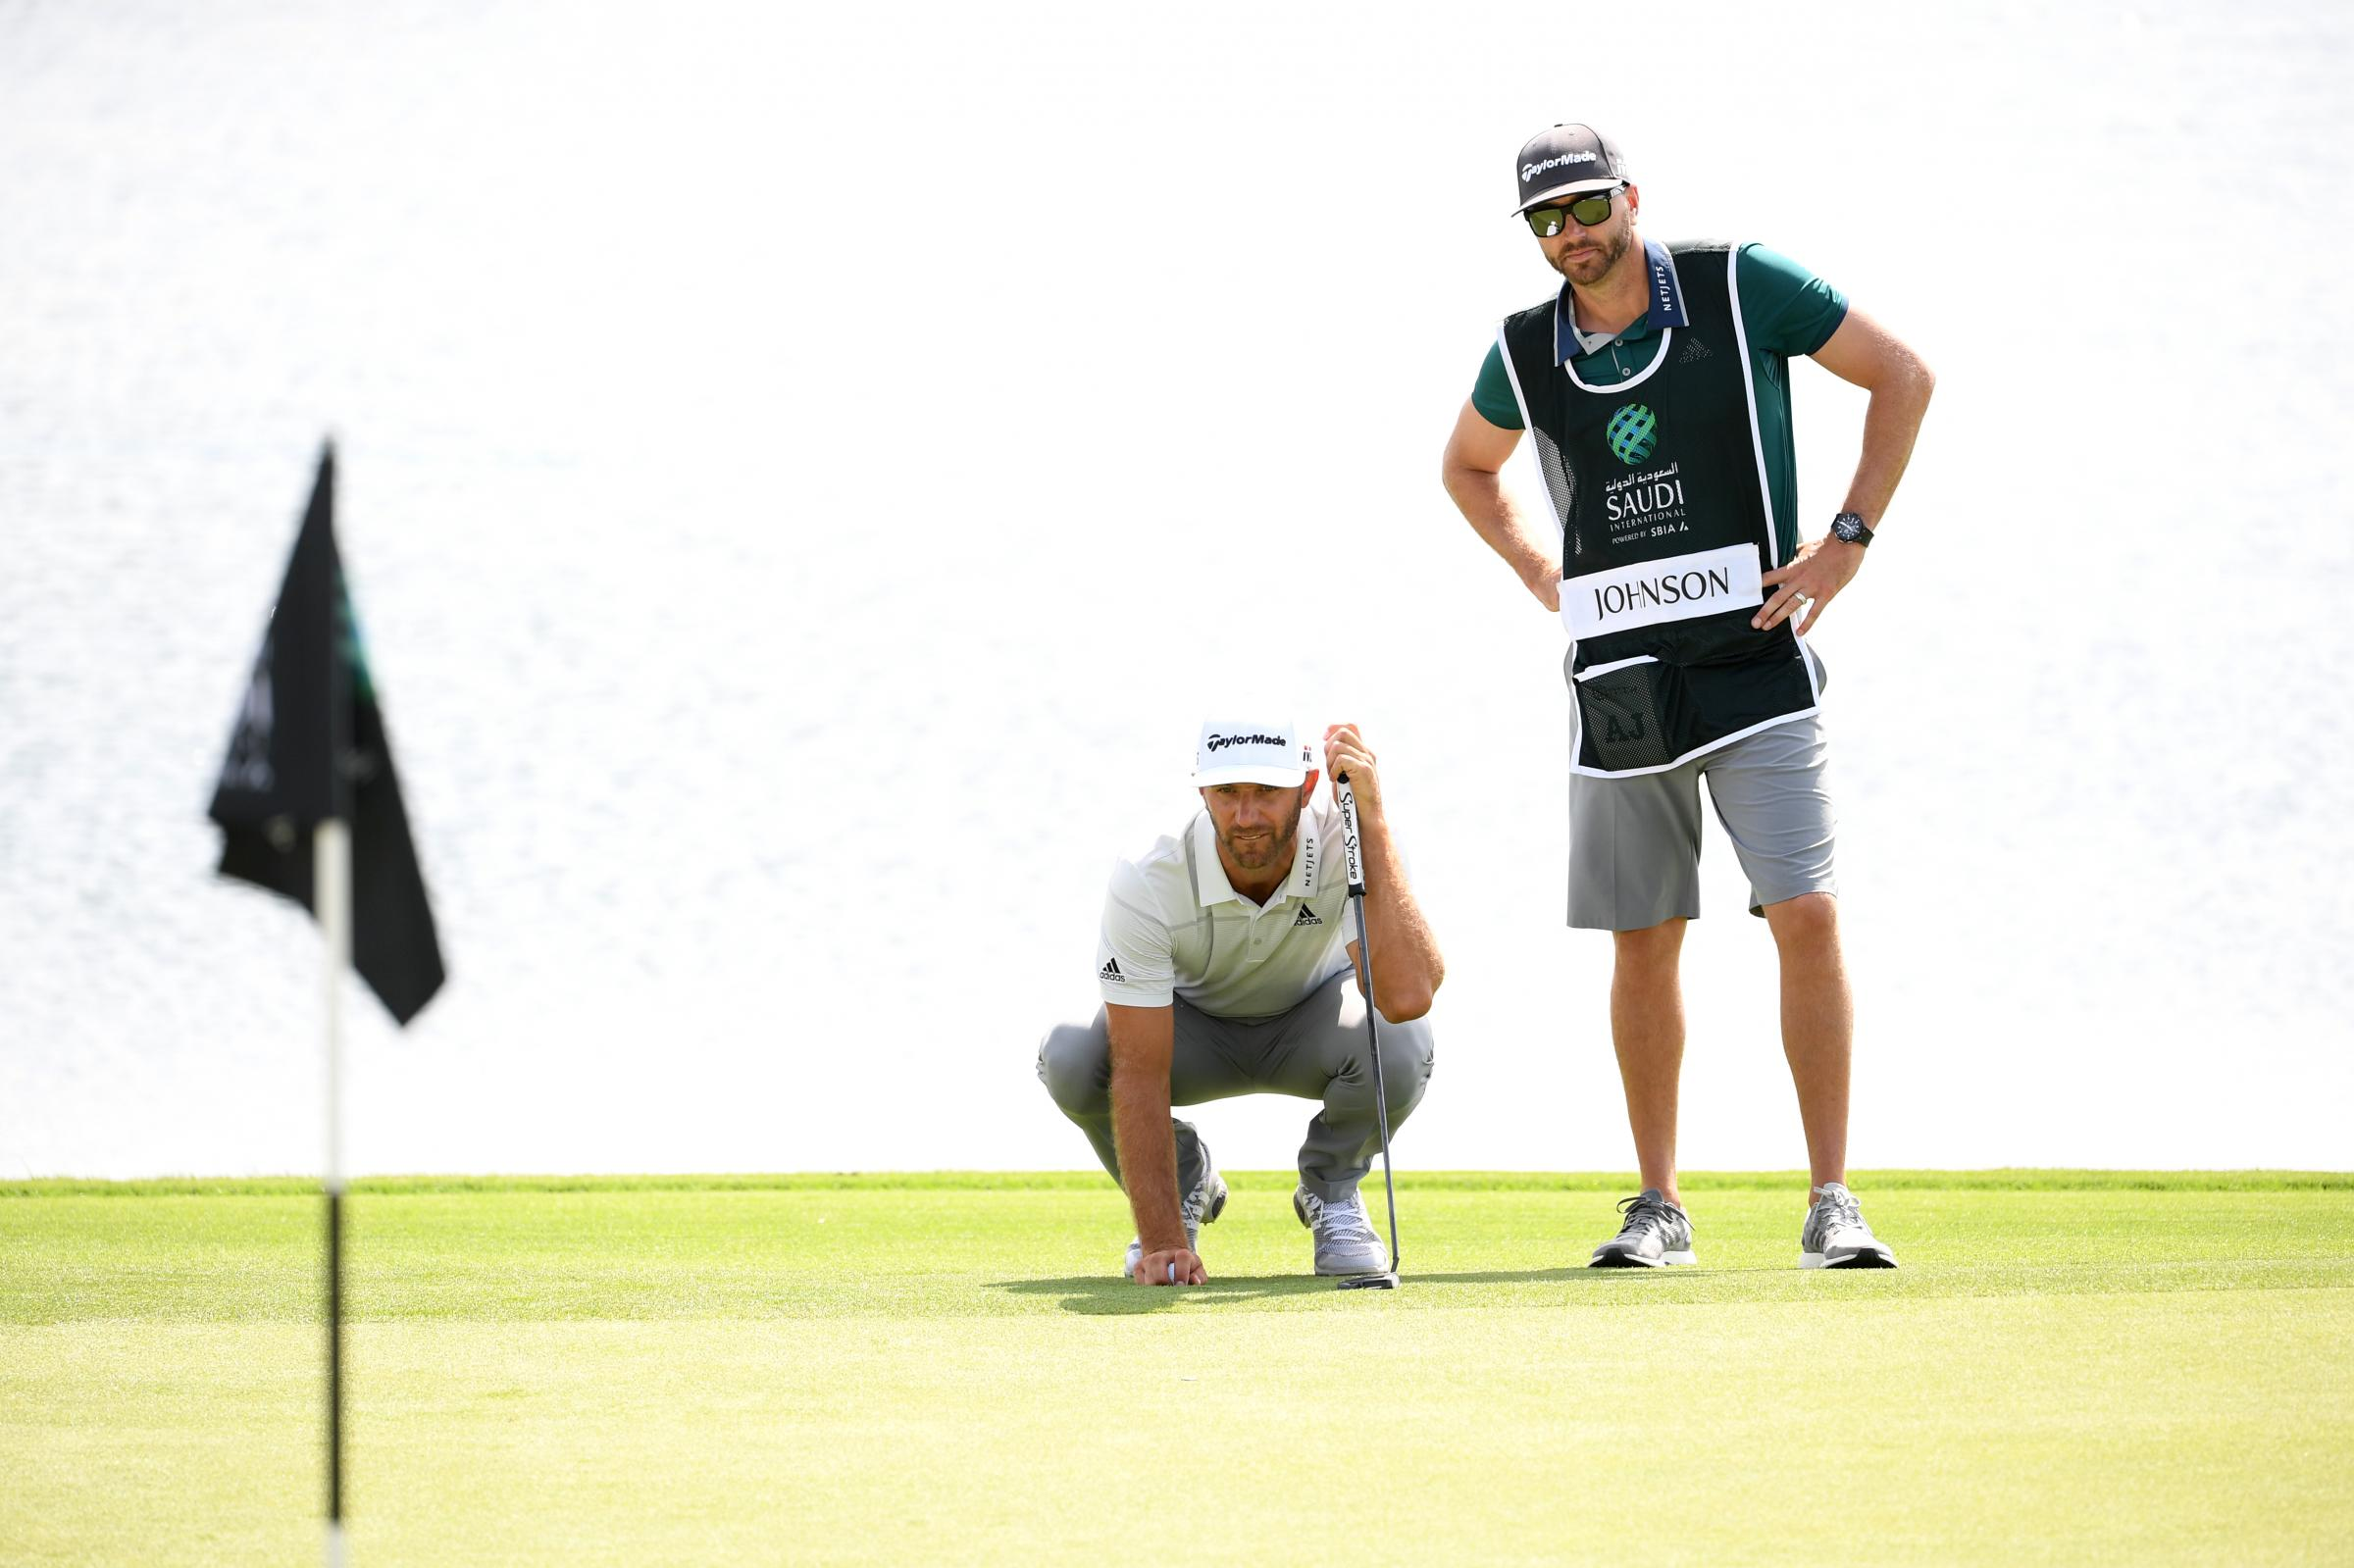 Dustin Johnson and his caddie and brother Austin Johnson line up a putt on the ninth hole during Day two of the Saudi International